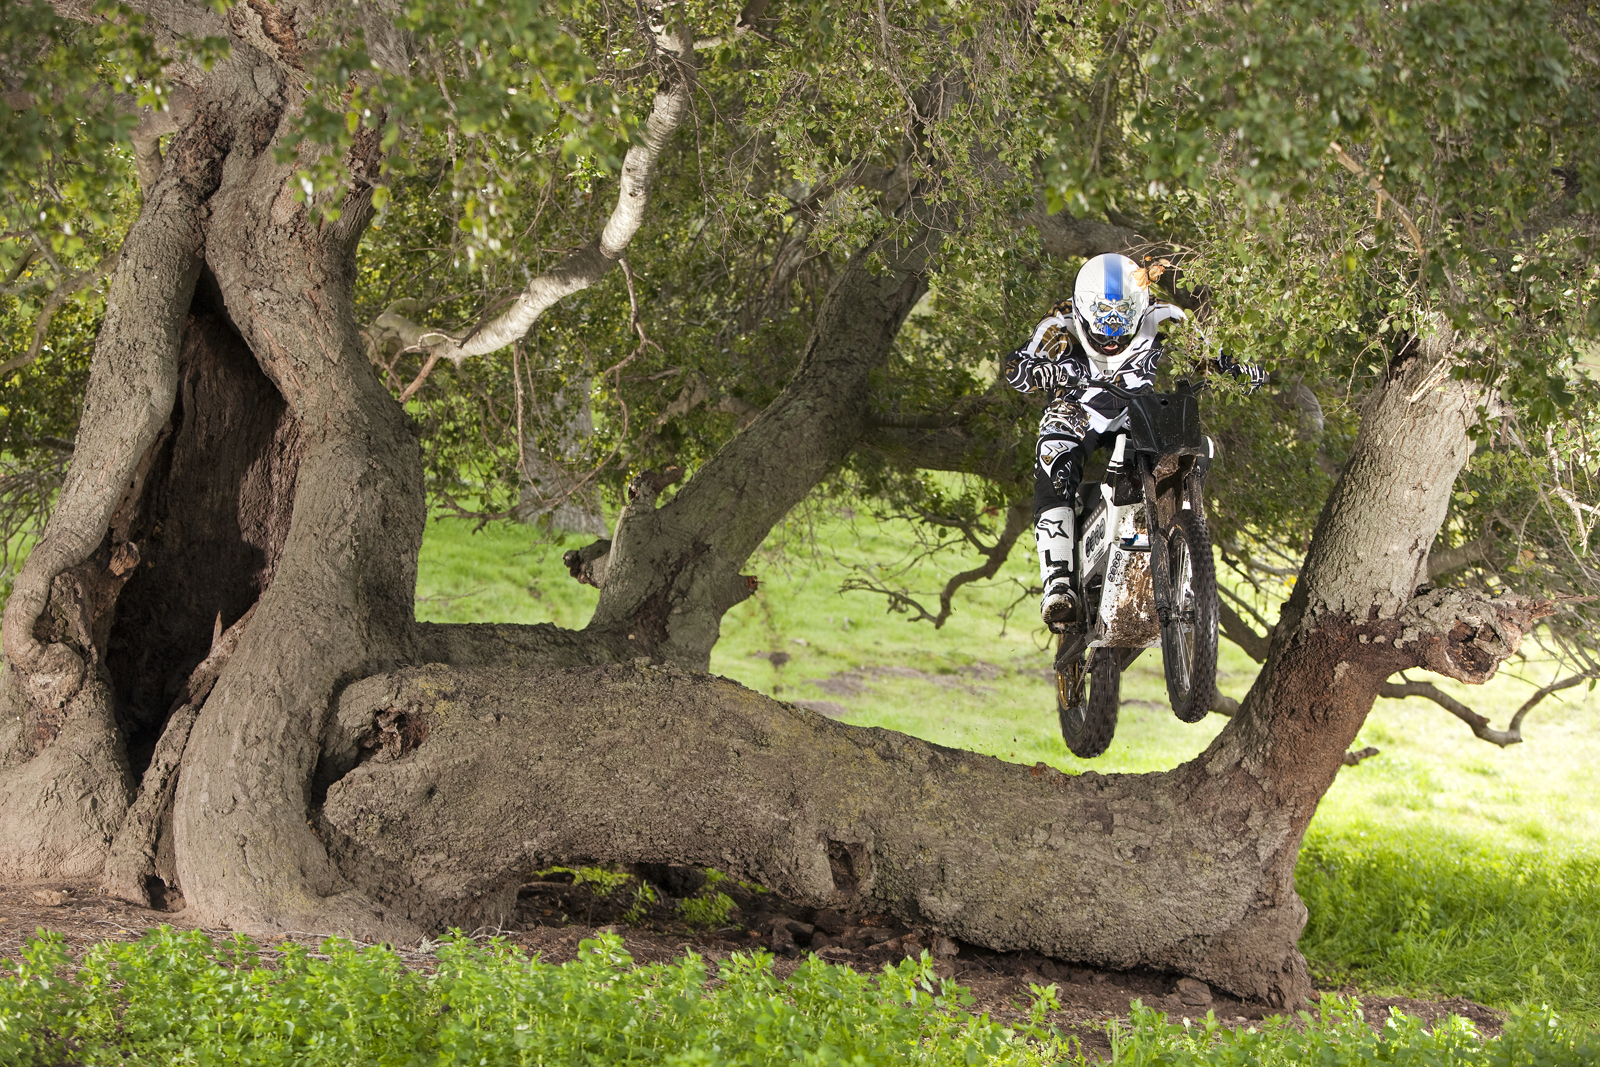 2010 Zero X Electric Motorcycle: Zaca Station - Tree Jump